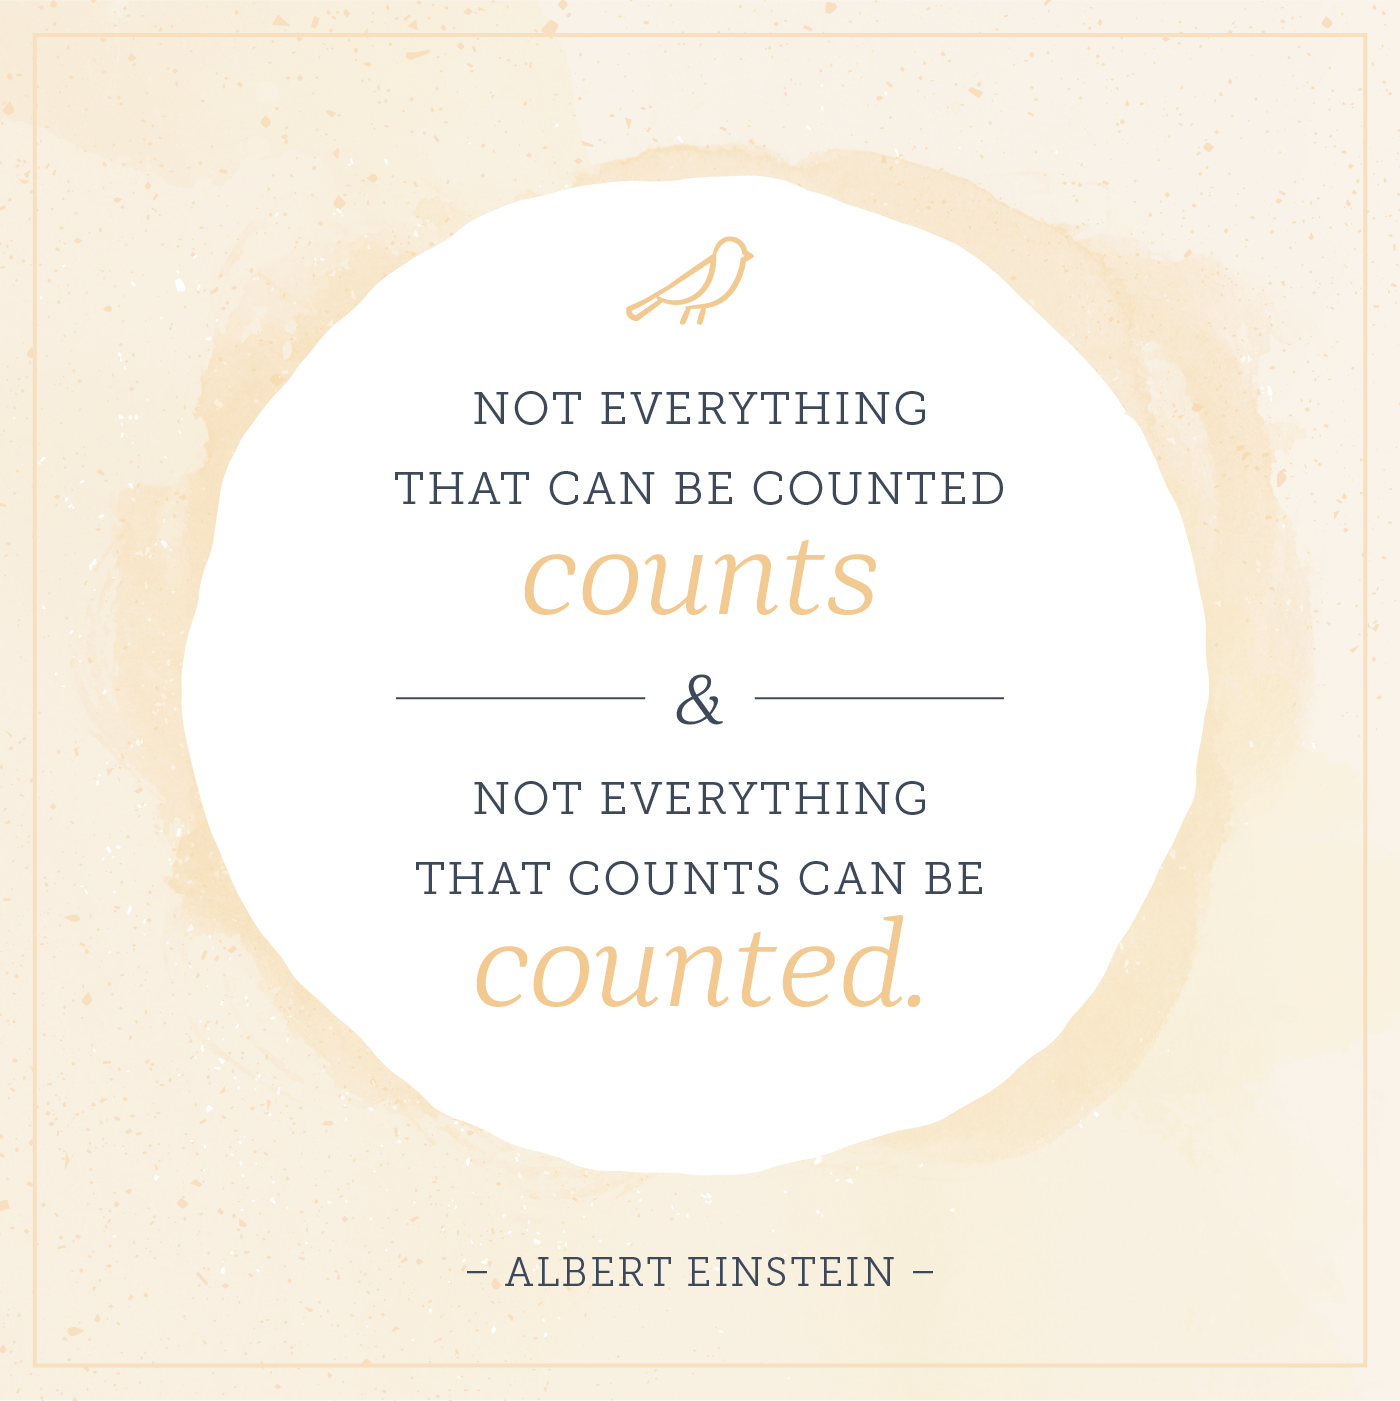 not everything that counts can be counted and not everything that counts can be counted